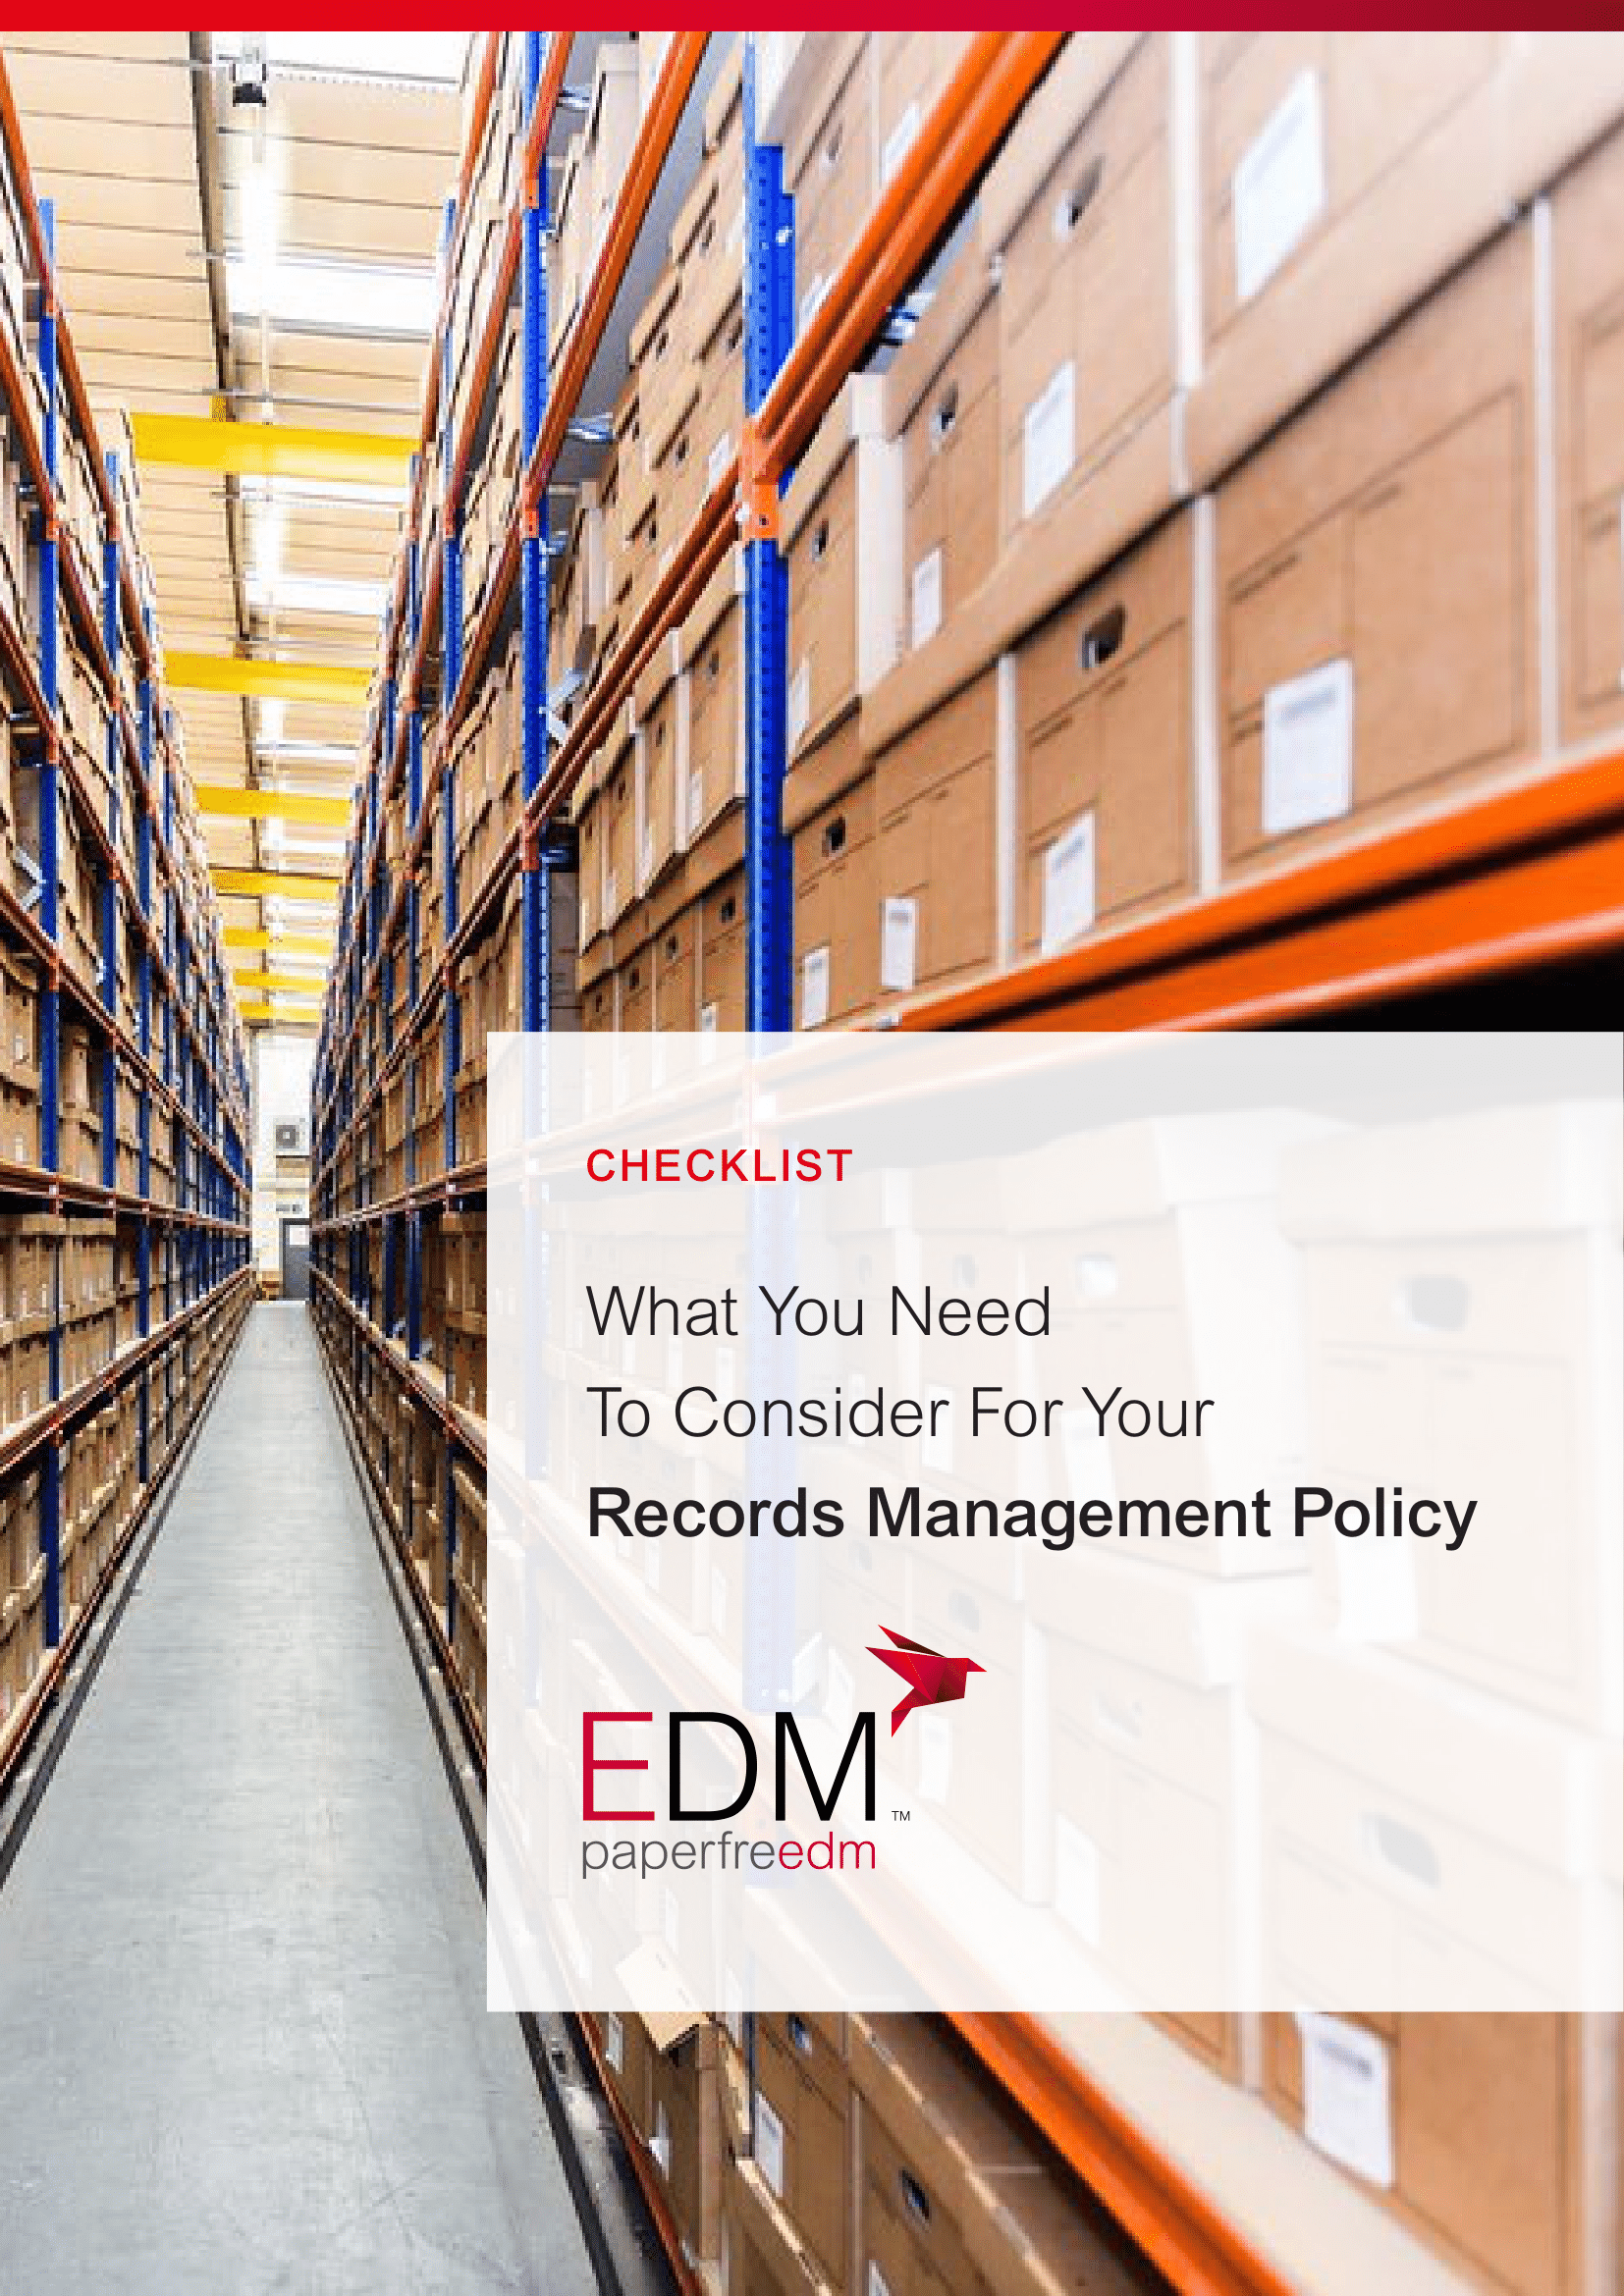 EDM-Records-Management-Policy-Checklist-Front-Cover-Image